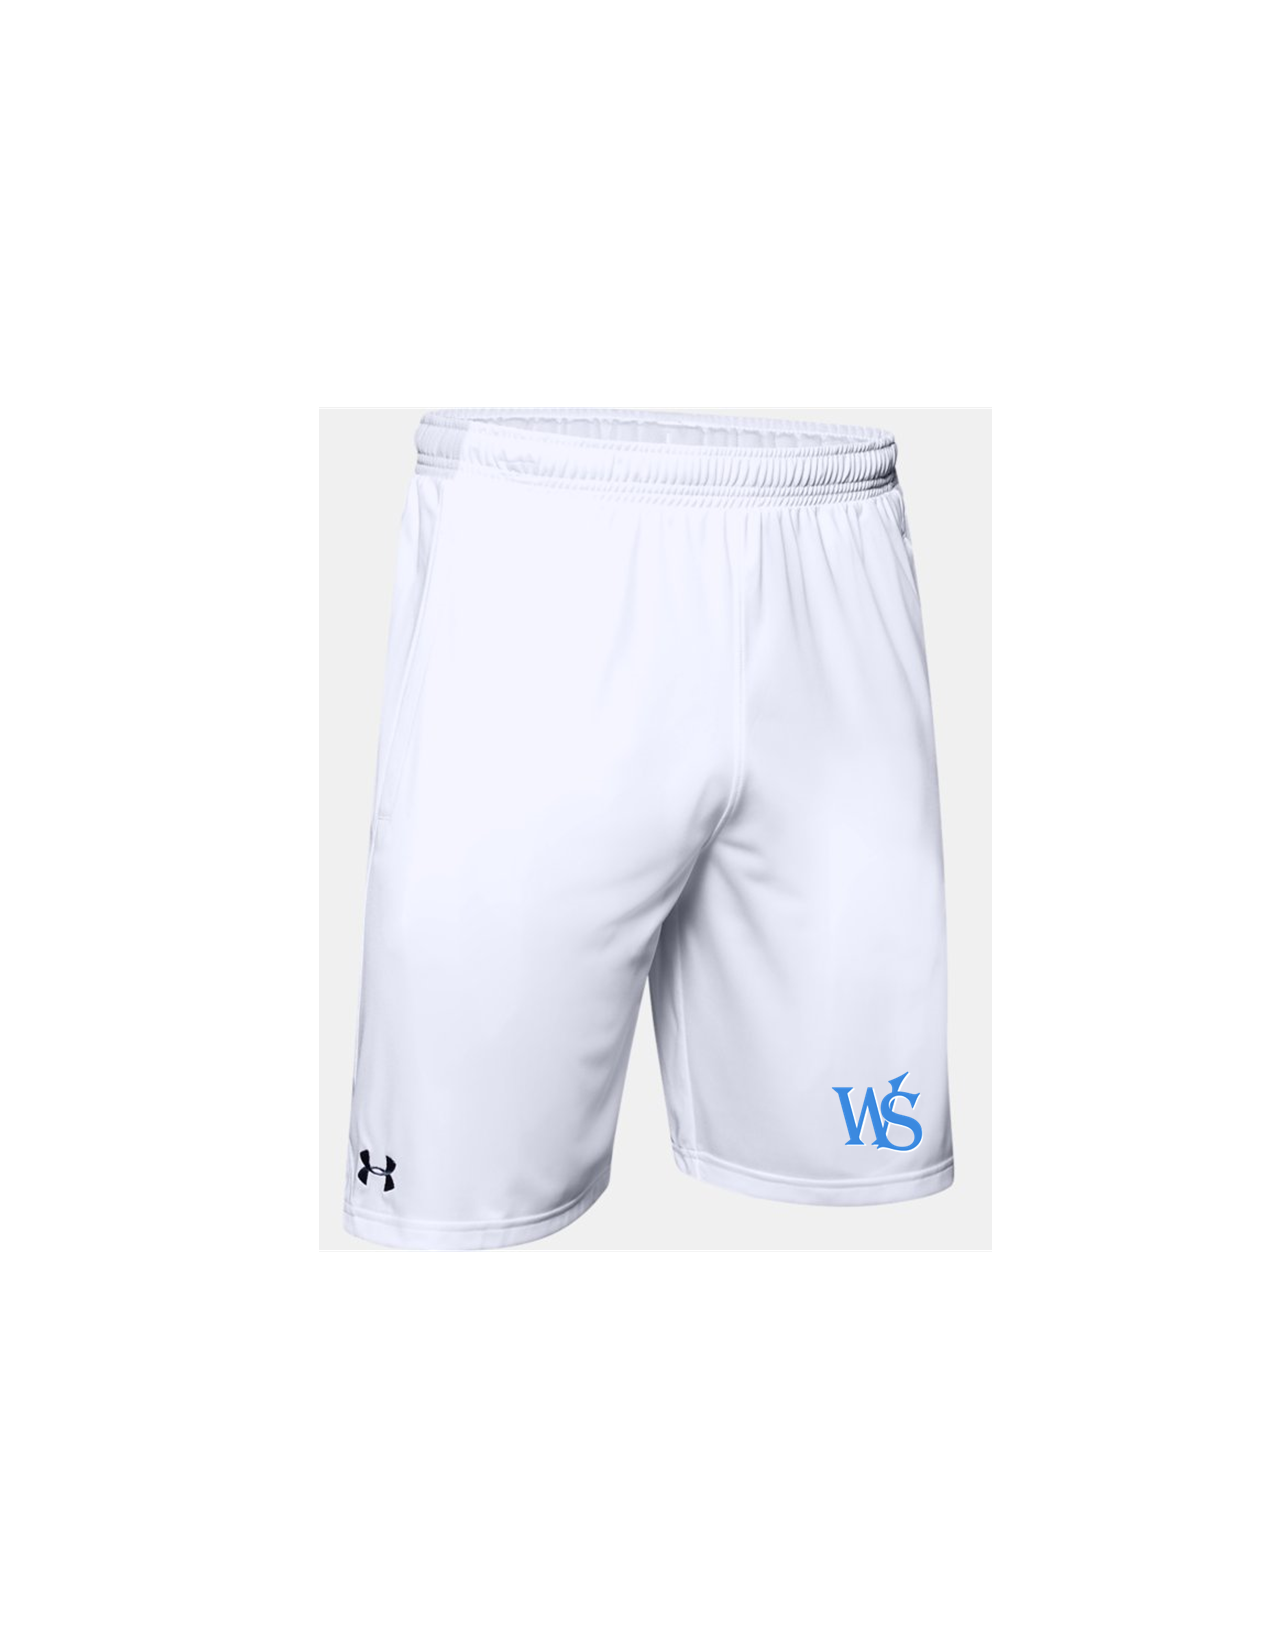 "Men's Under Armour Locker 9"" Pocketed Shorts"